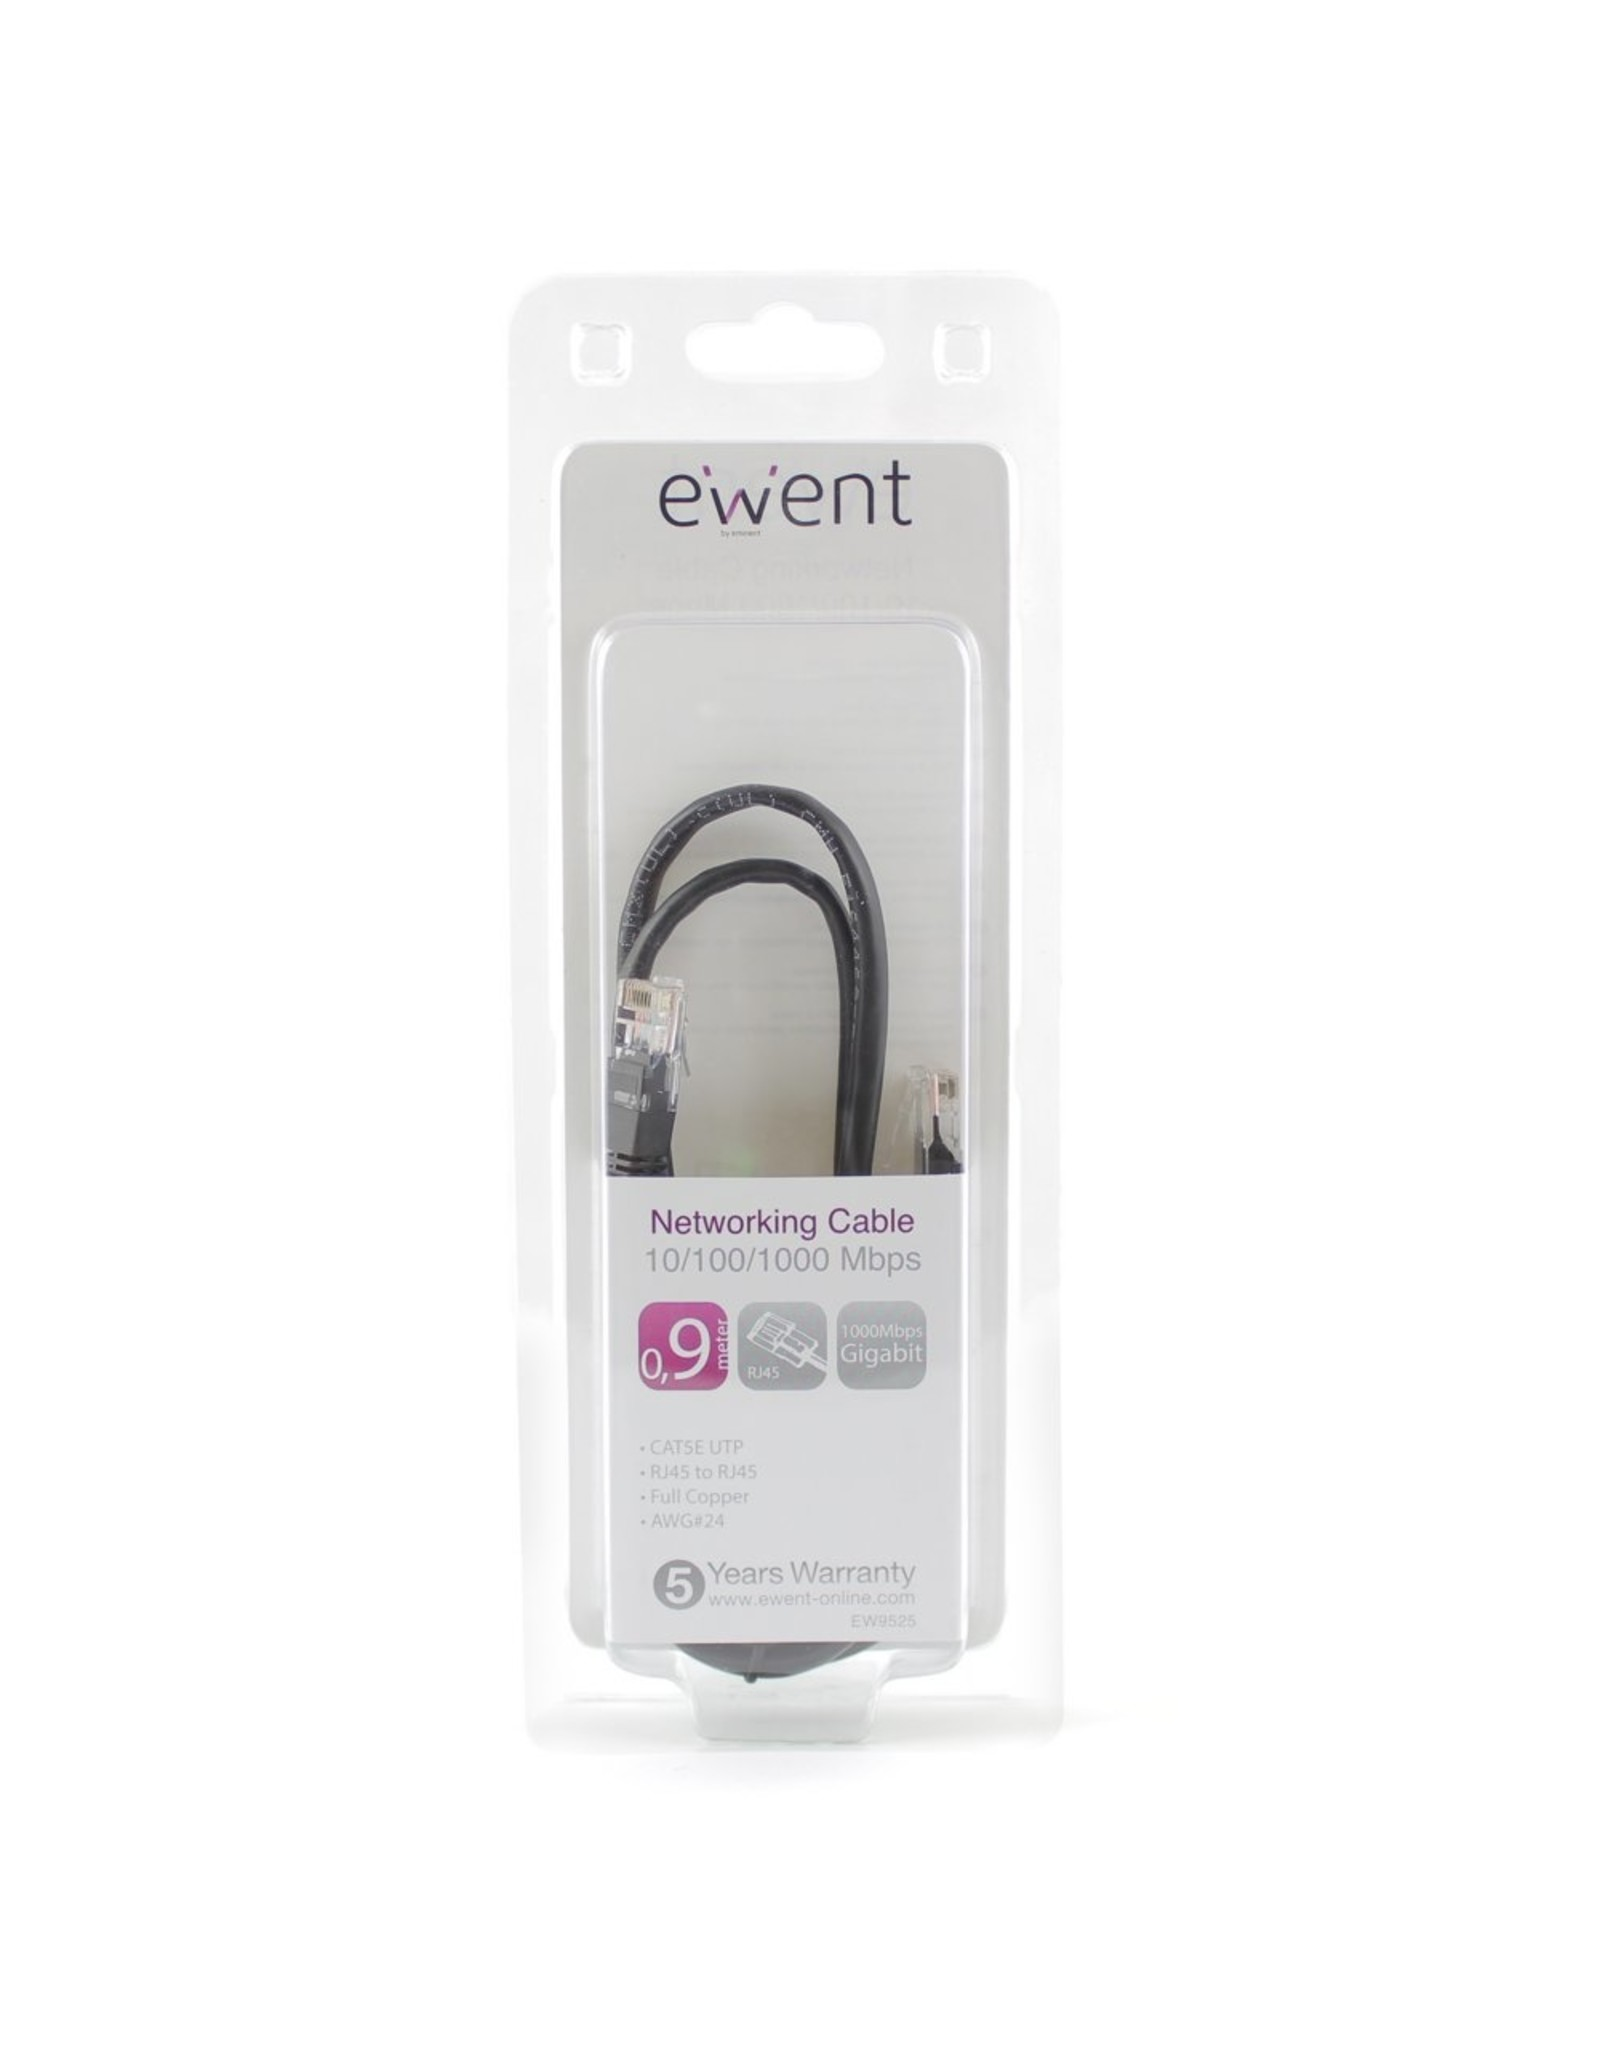 Ewent Networking Cable 0.9 Meter Black